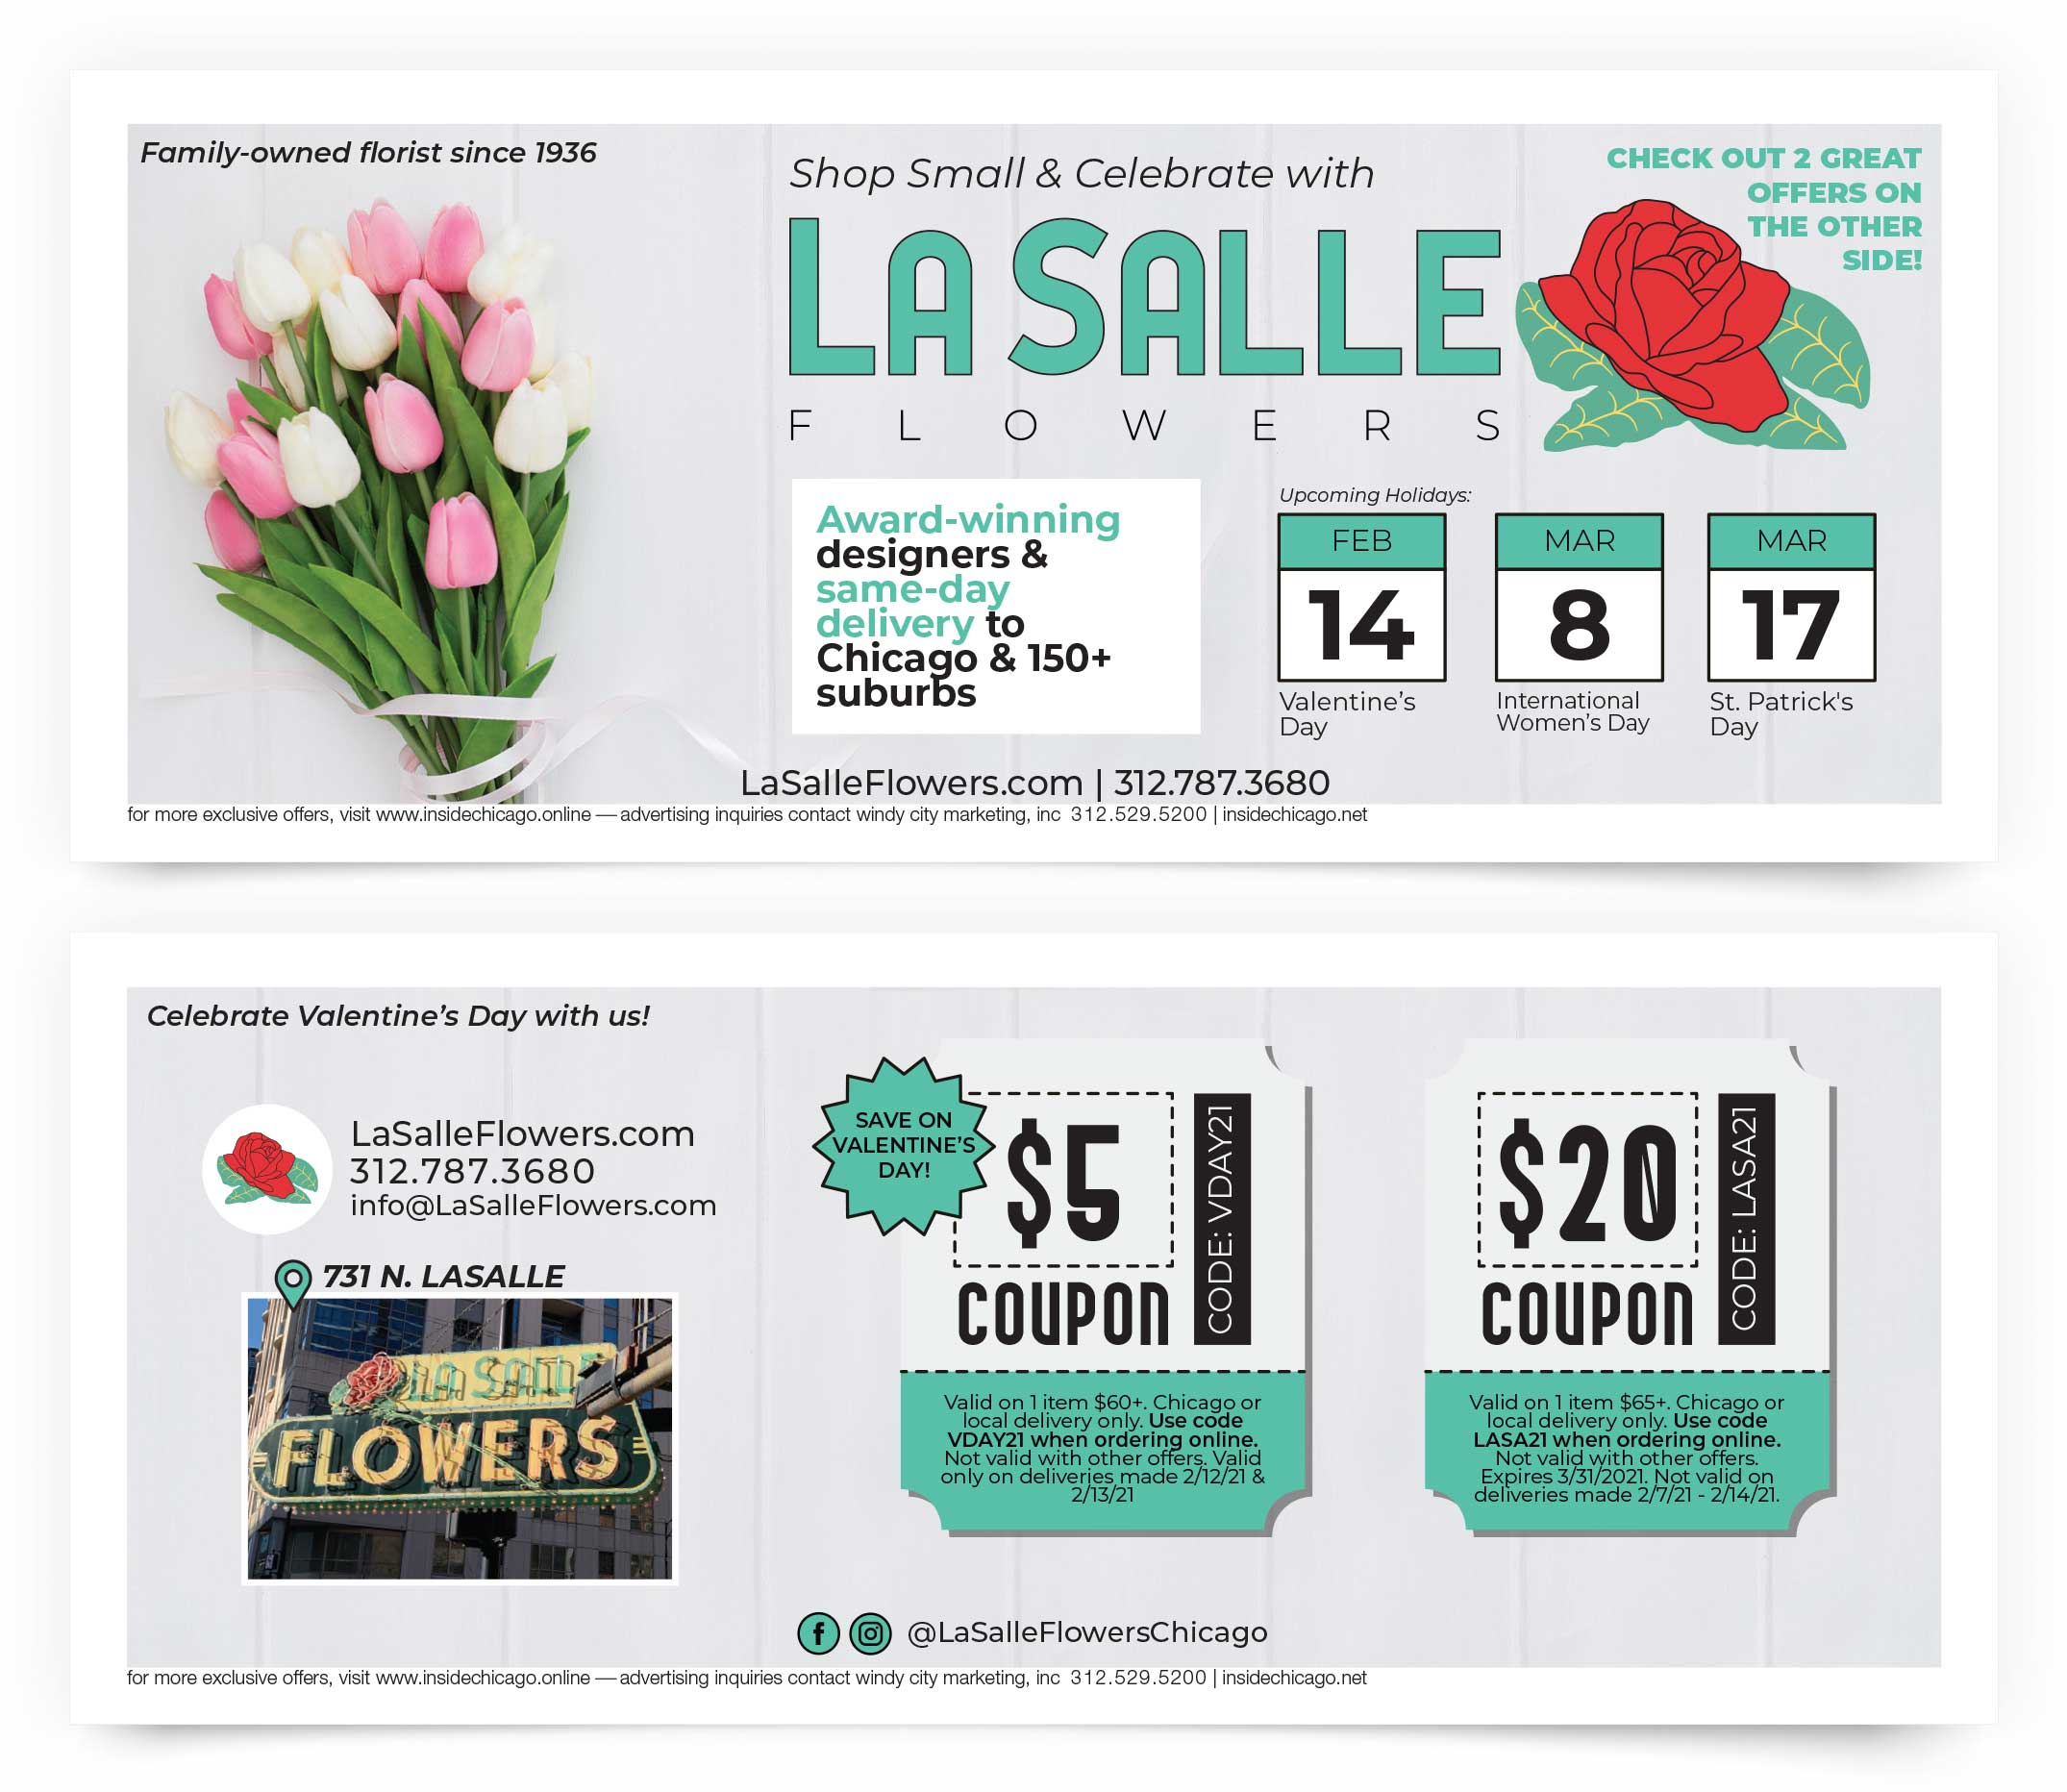 Lasalle Flowers Coupons